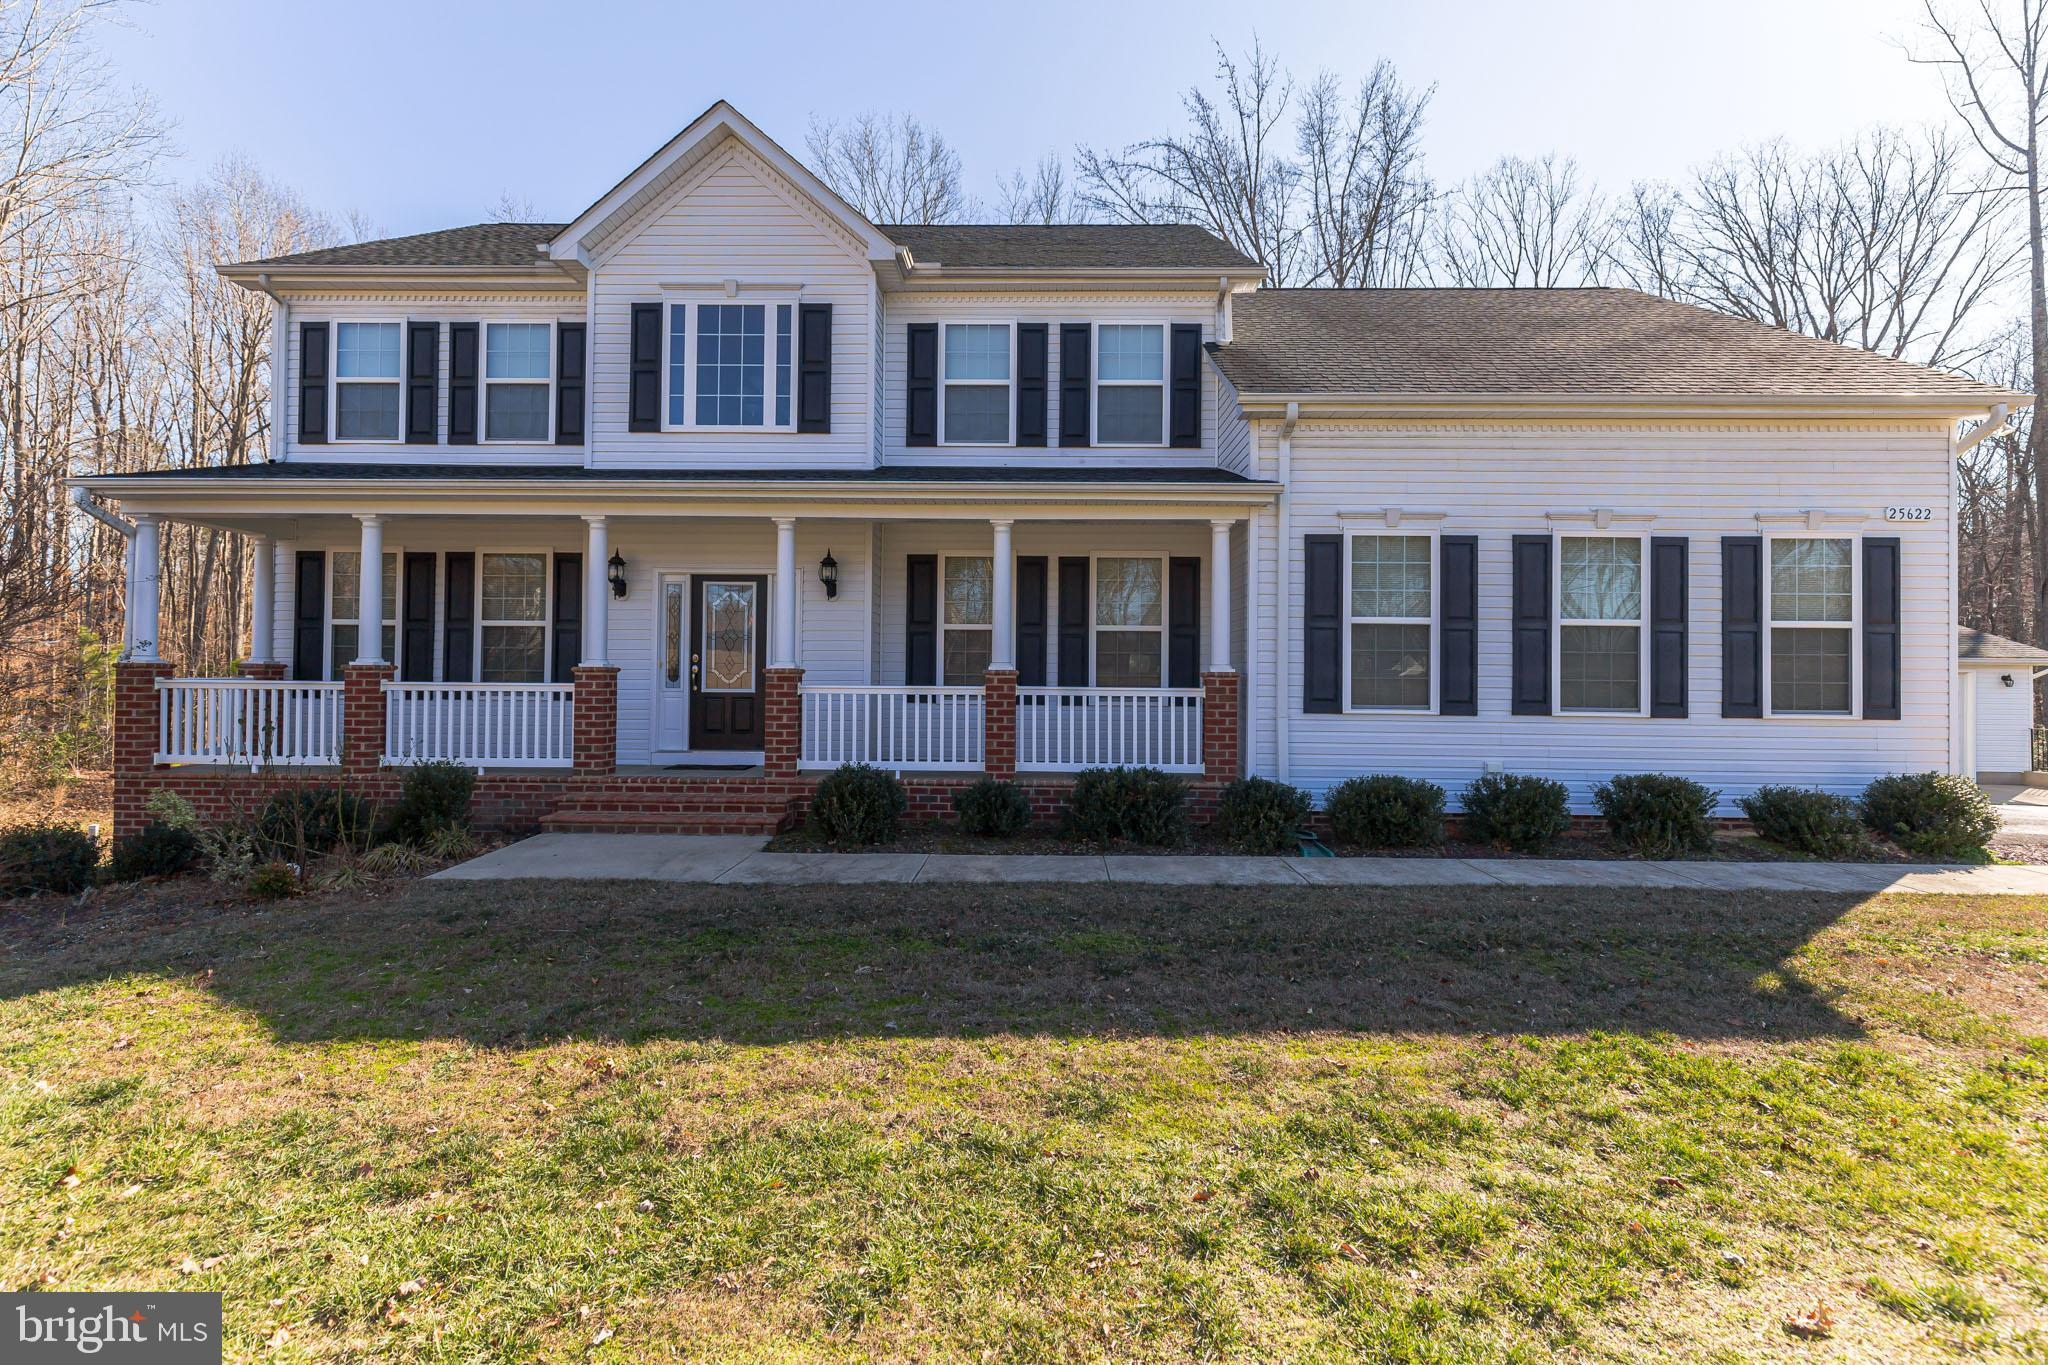 25622 SCENIC VIEW STREET, MECHANICSVILLE, MD 20659